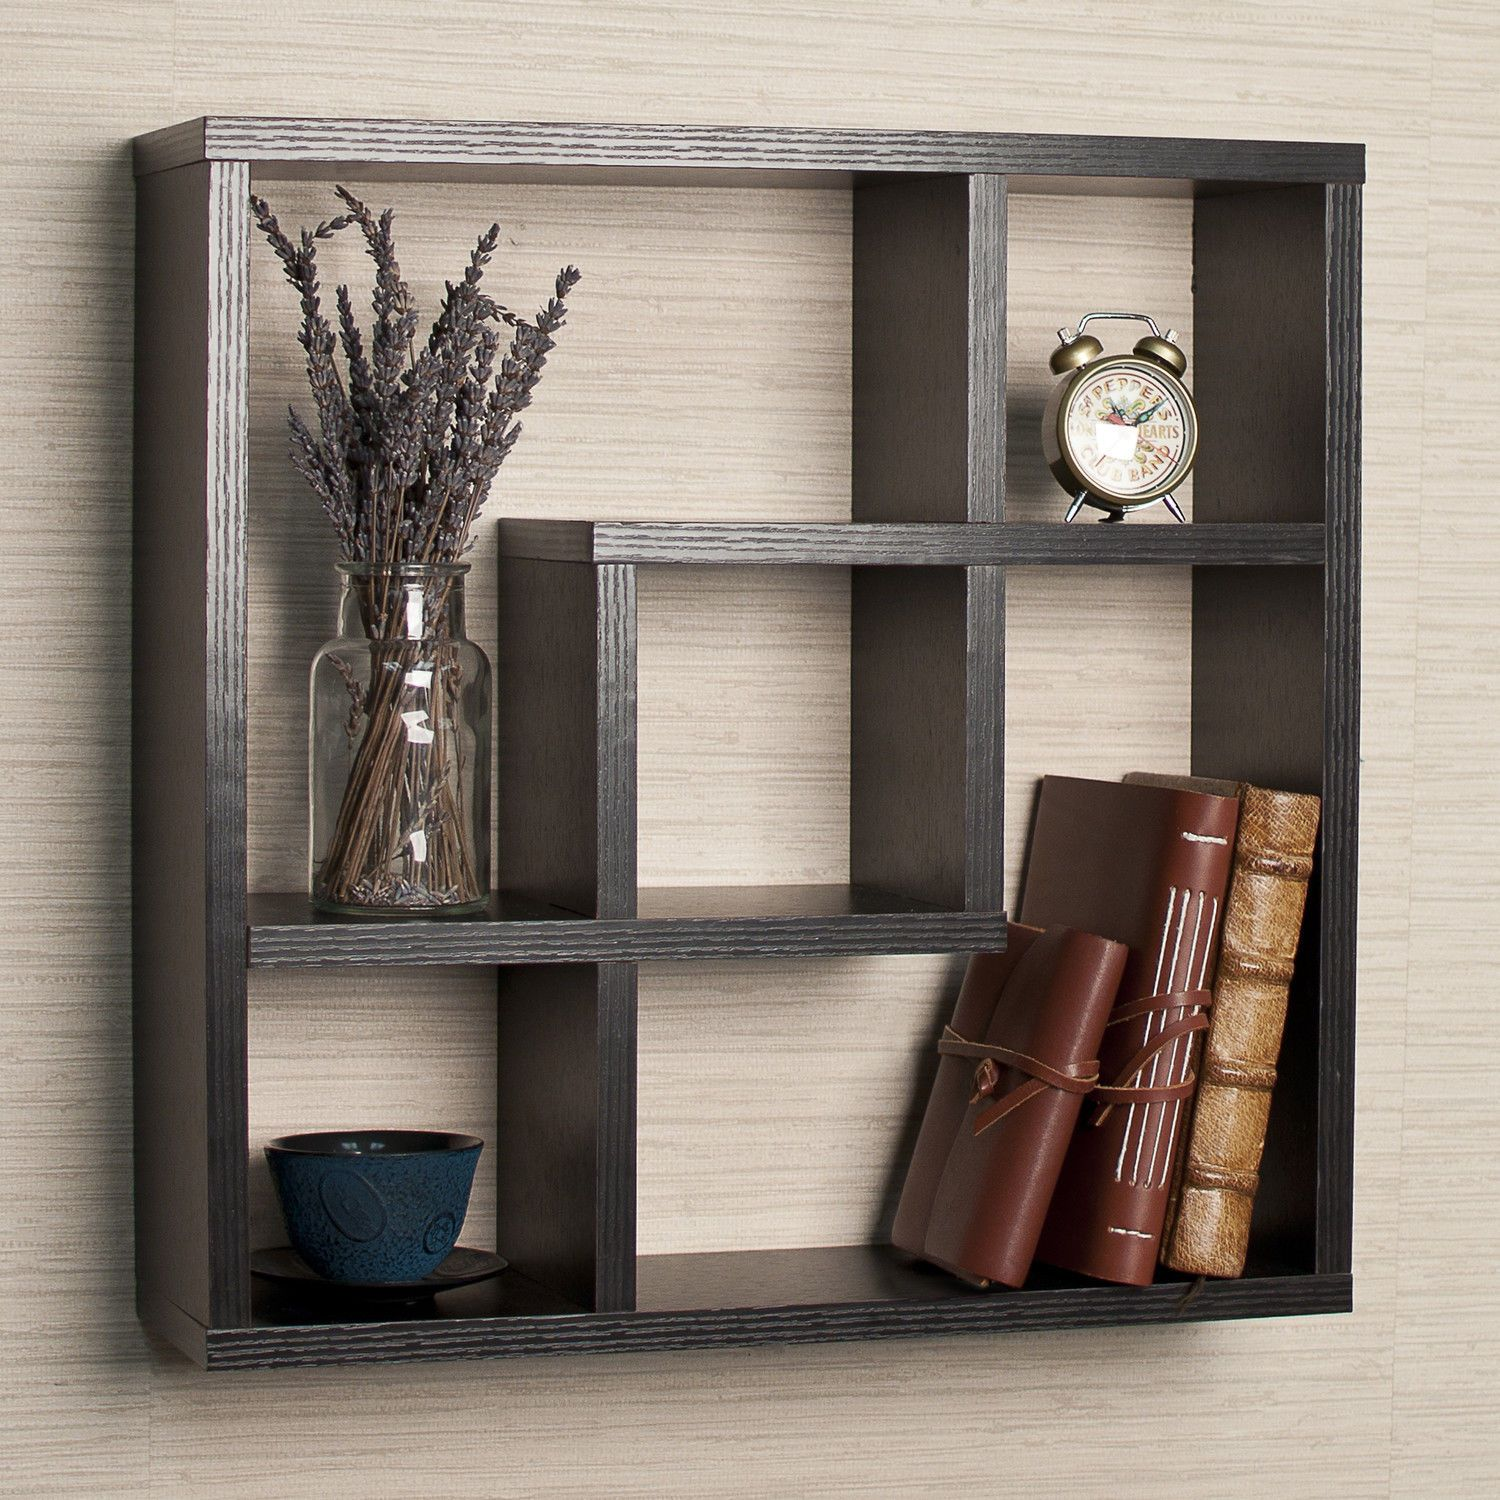 Display Wall Built Ins Love This Perfect Styling Wall Display Cabinet Wall Display Case Display Shelves